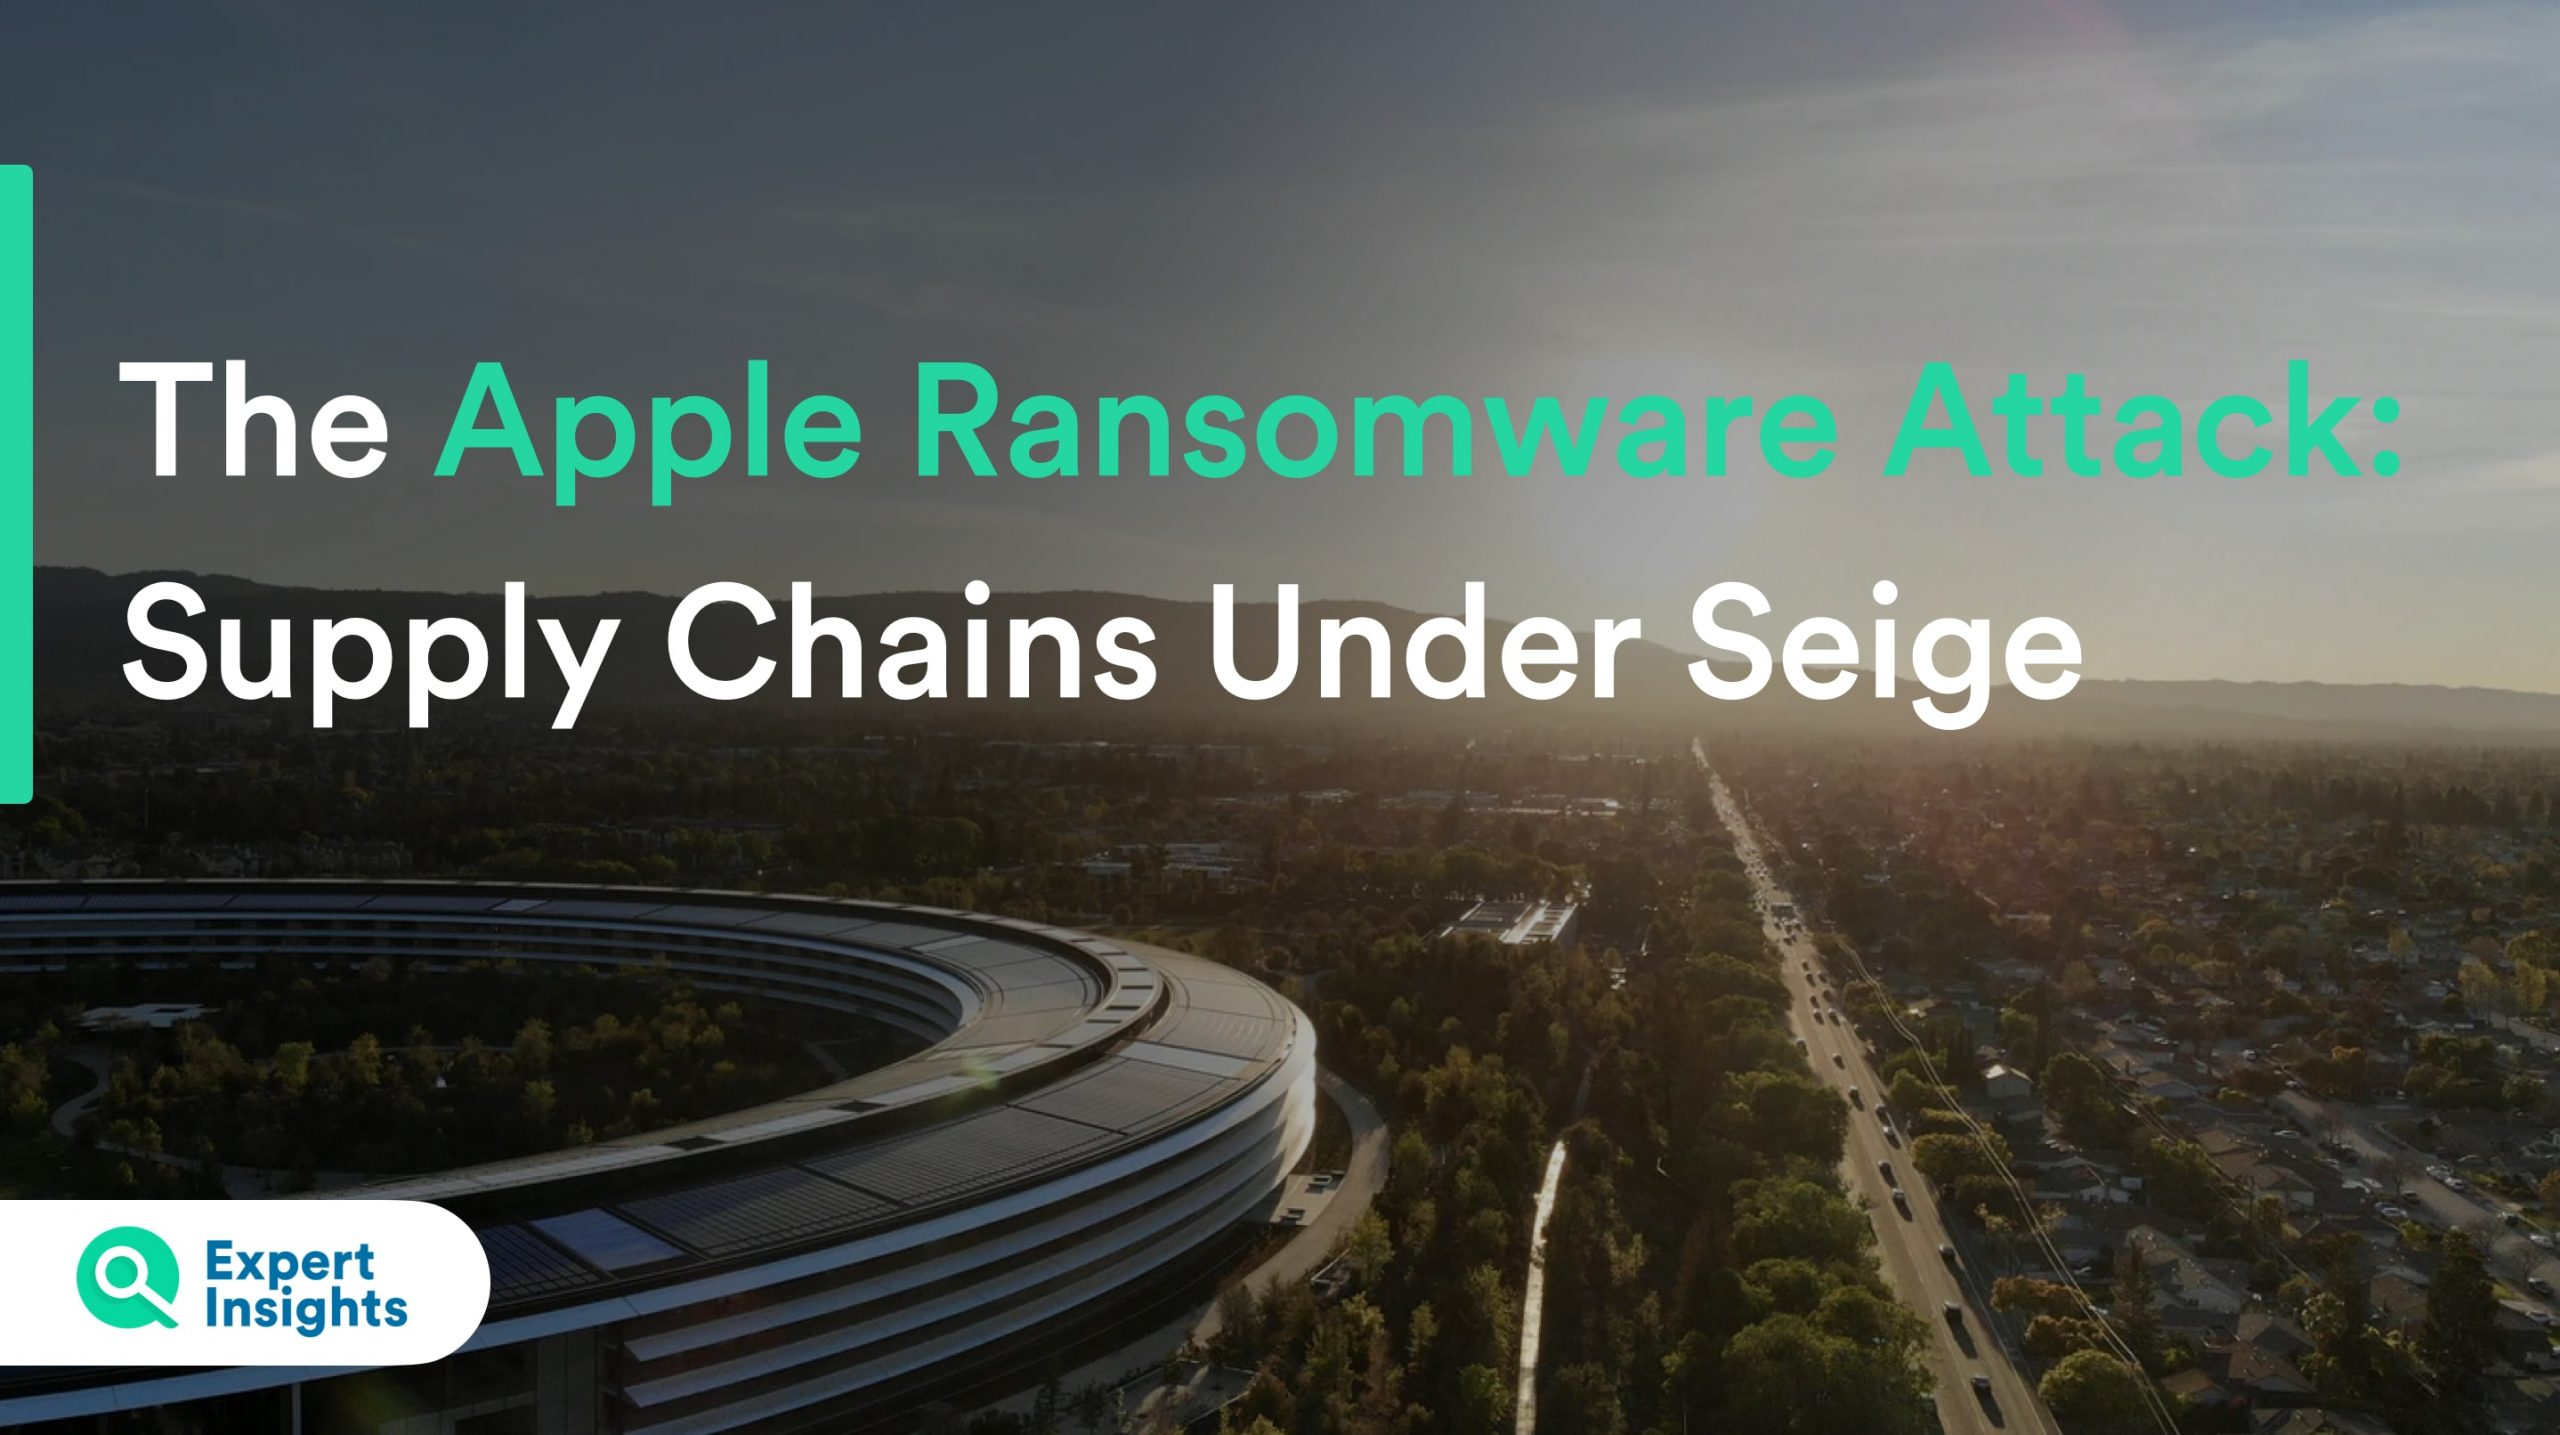 The Apple Ransomware Attack: Supply Chains Are Under Siege